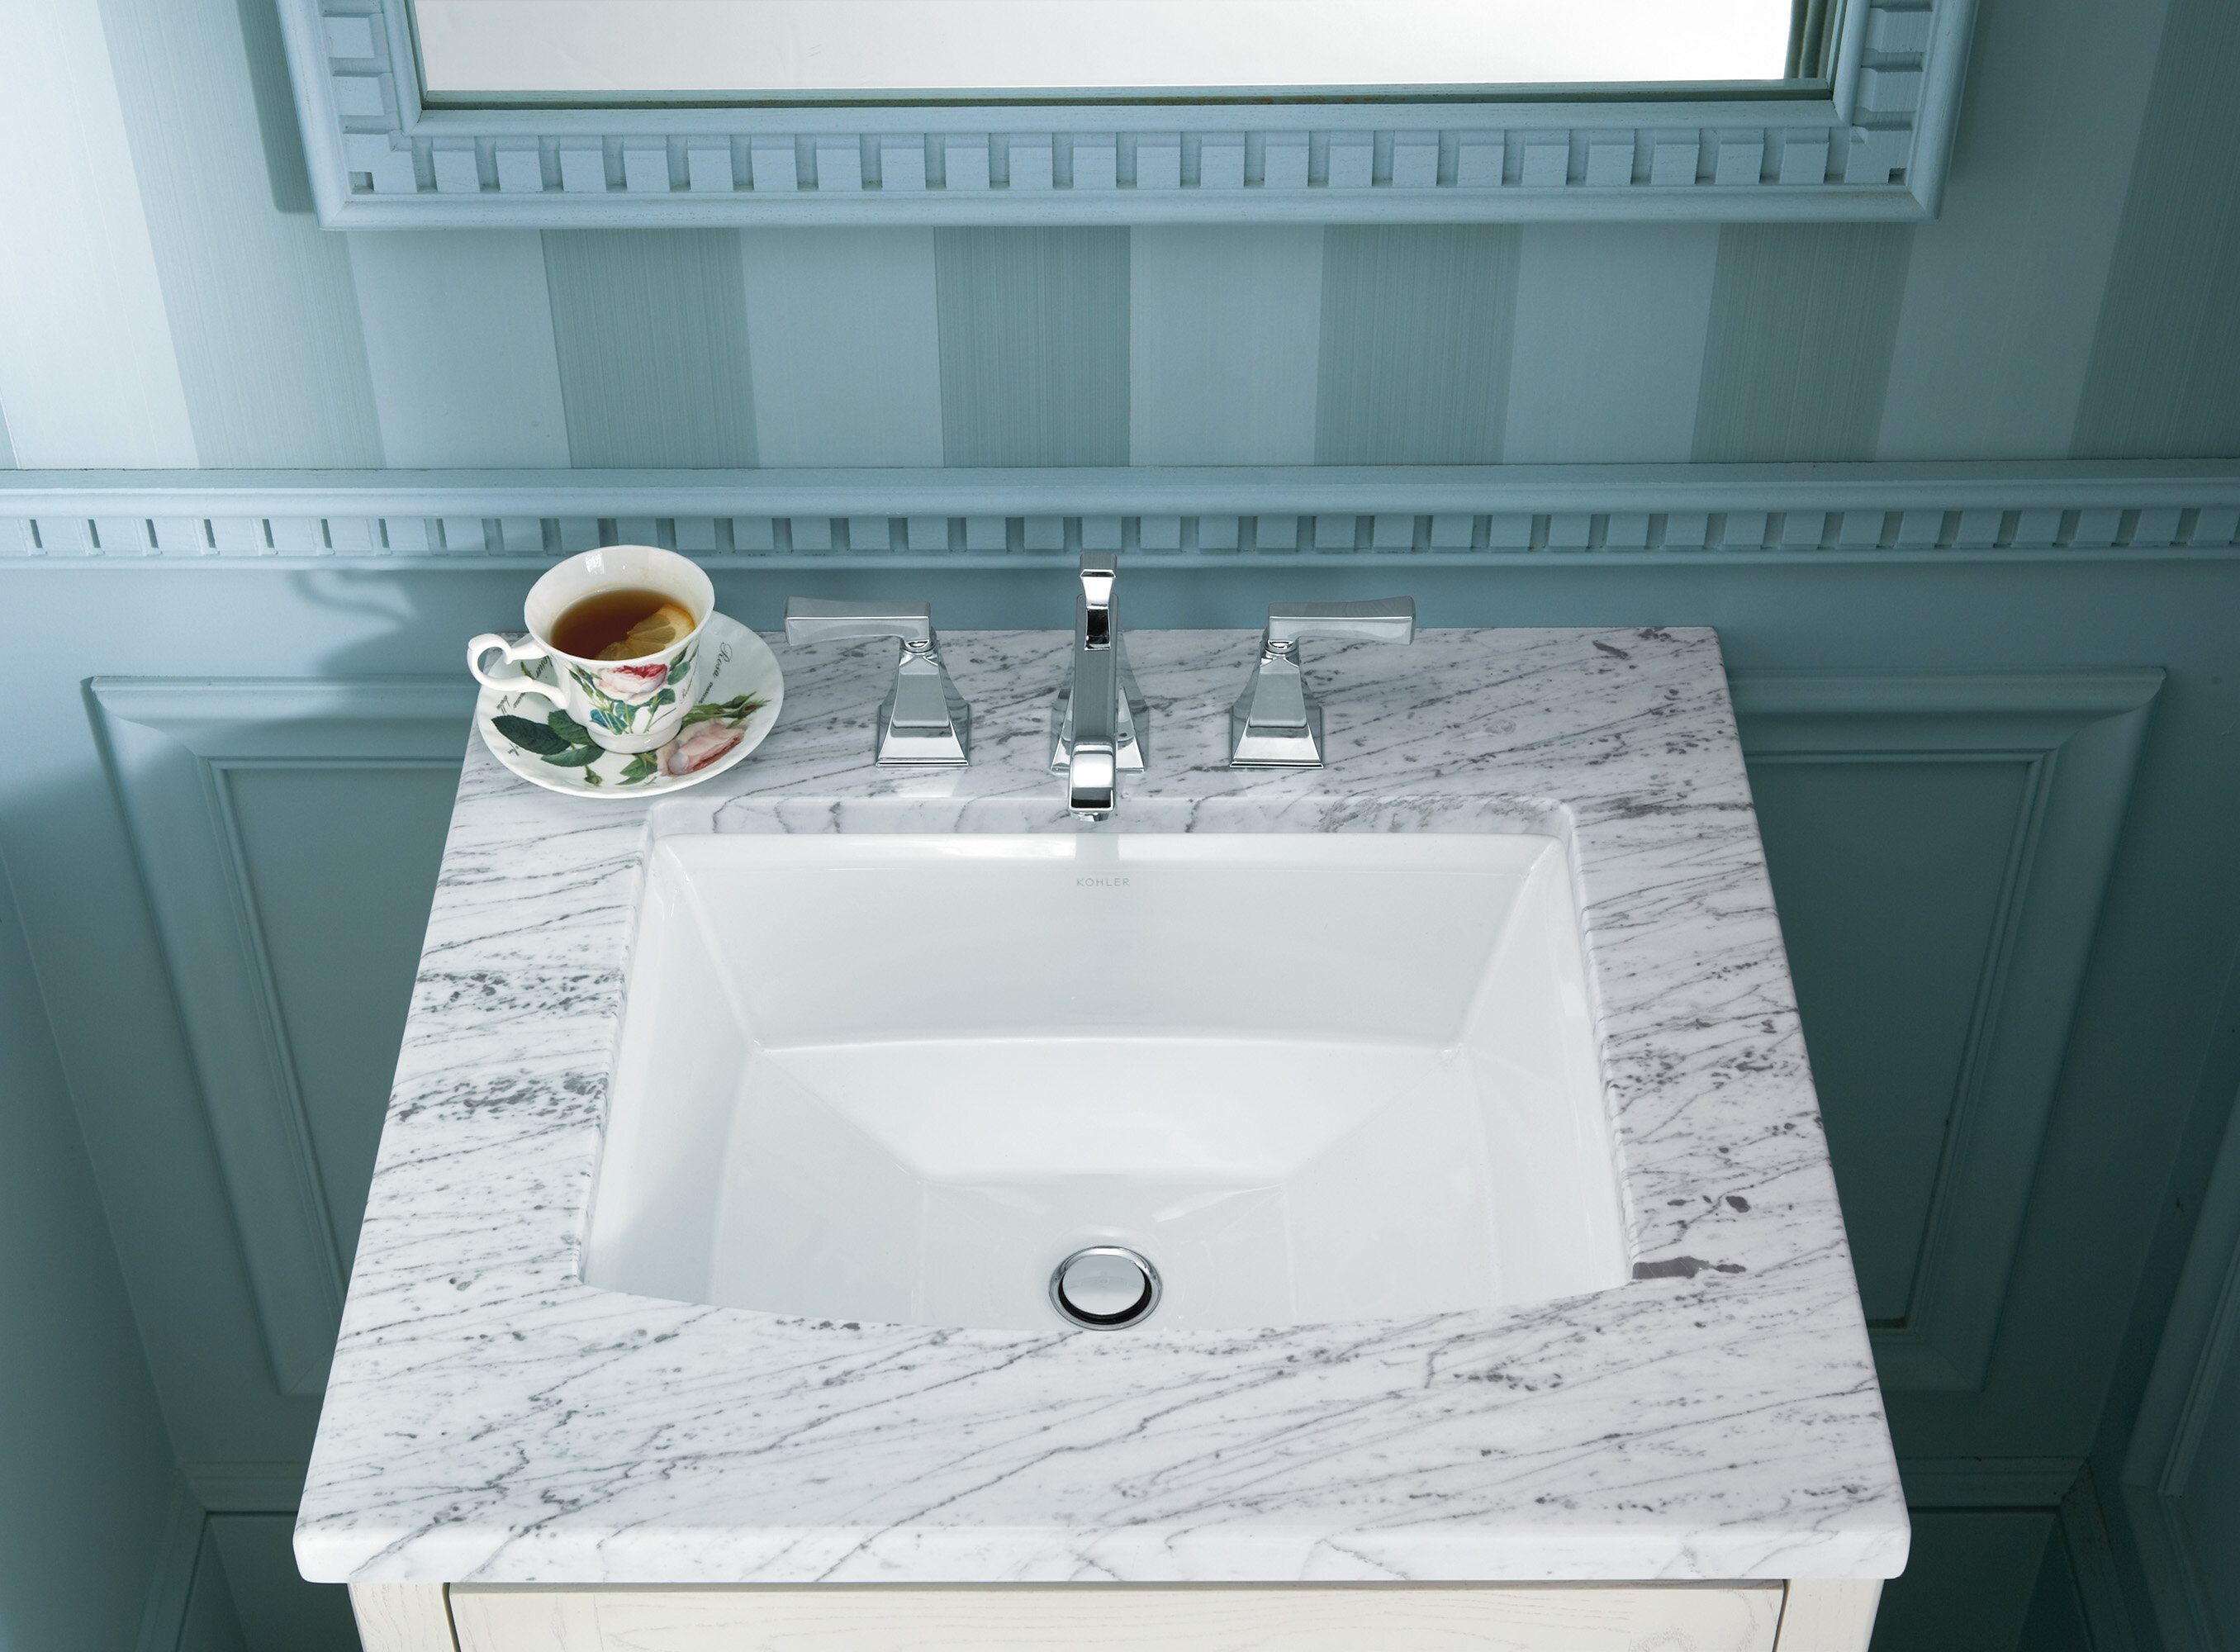 K 2355 096ny Kohler Archer Ceramic Rectangular Undermount Bathroom